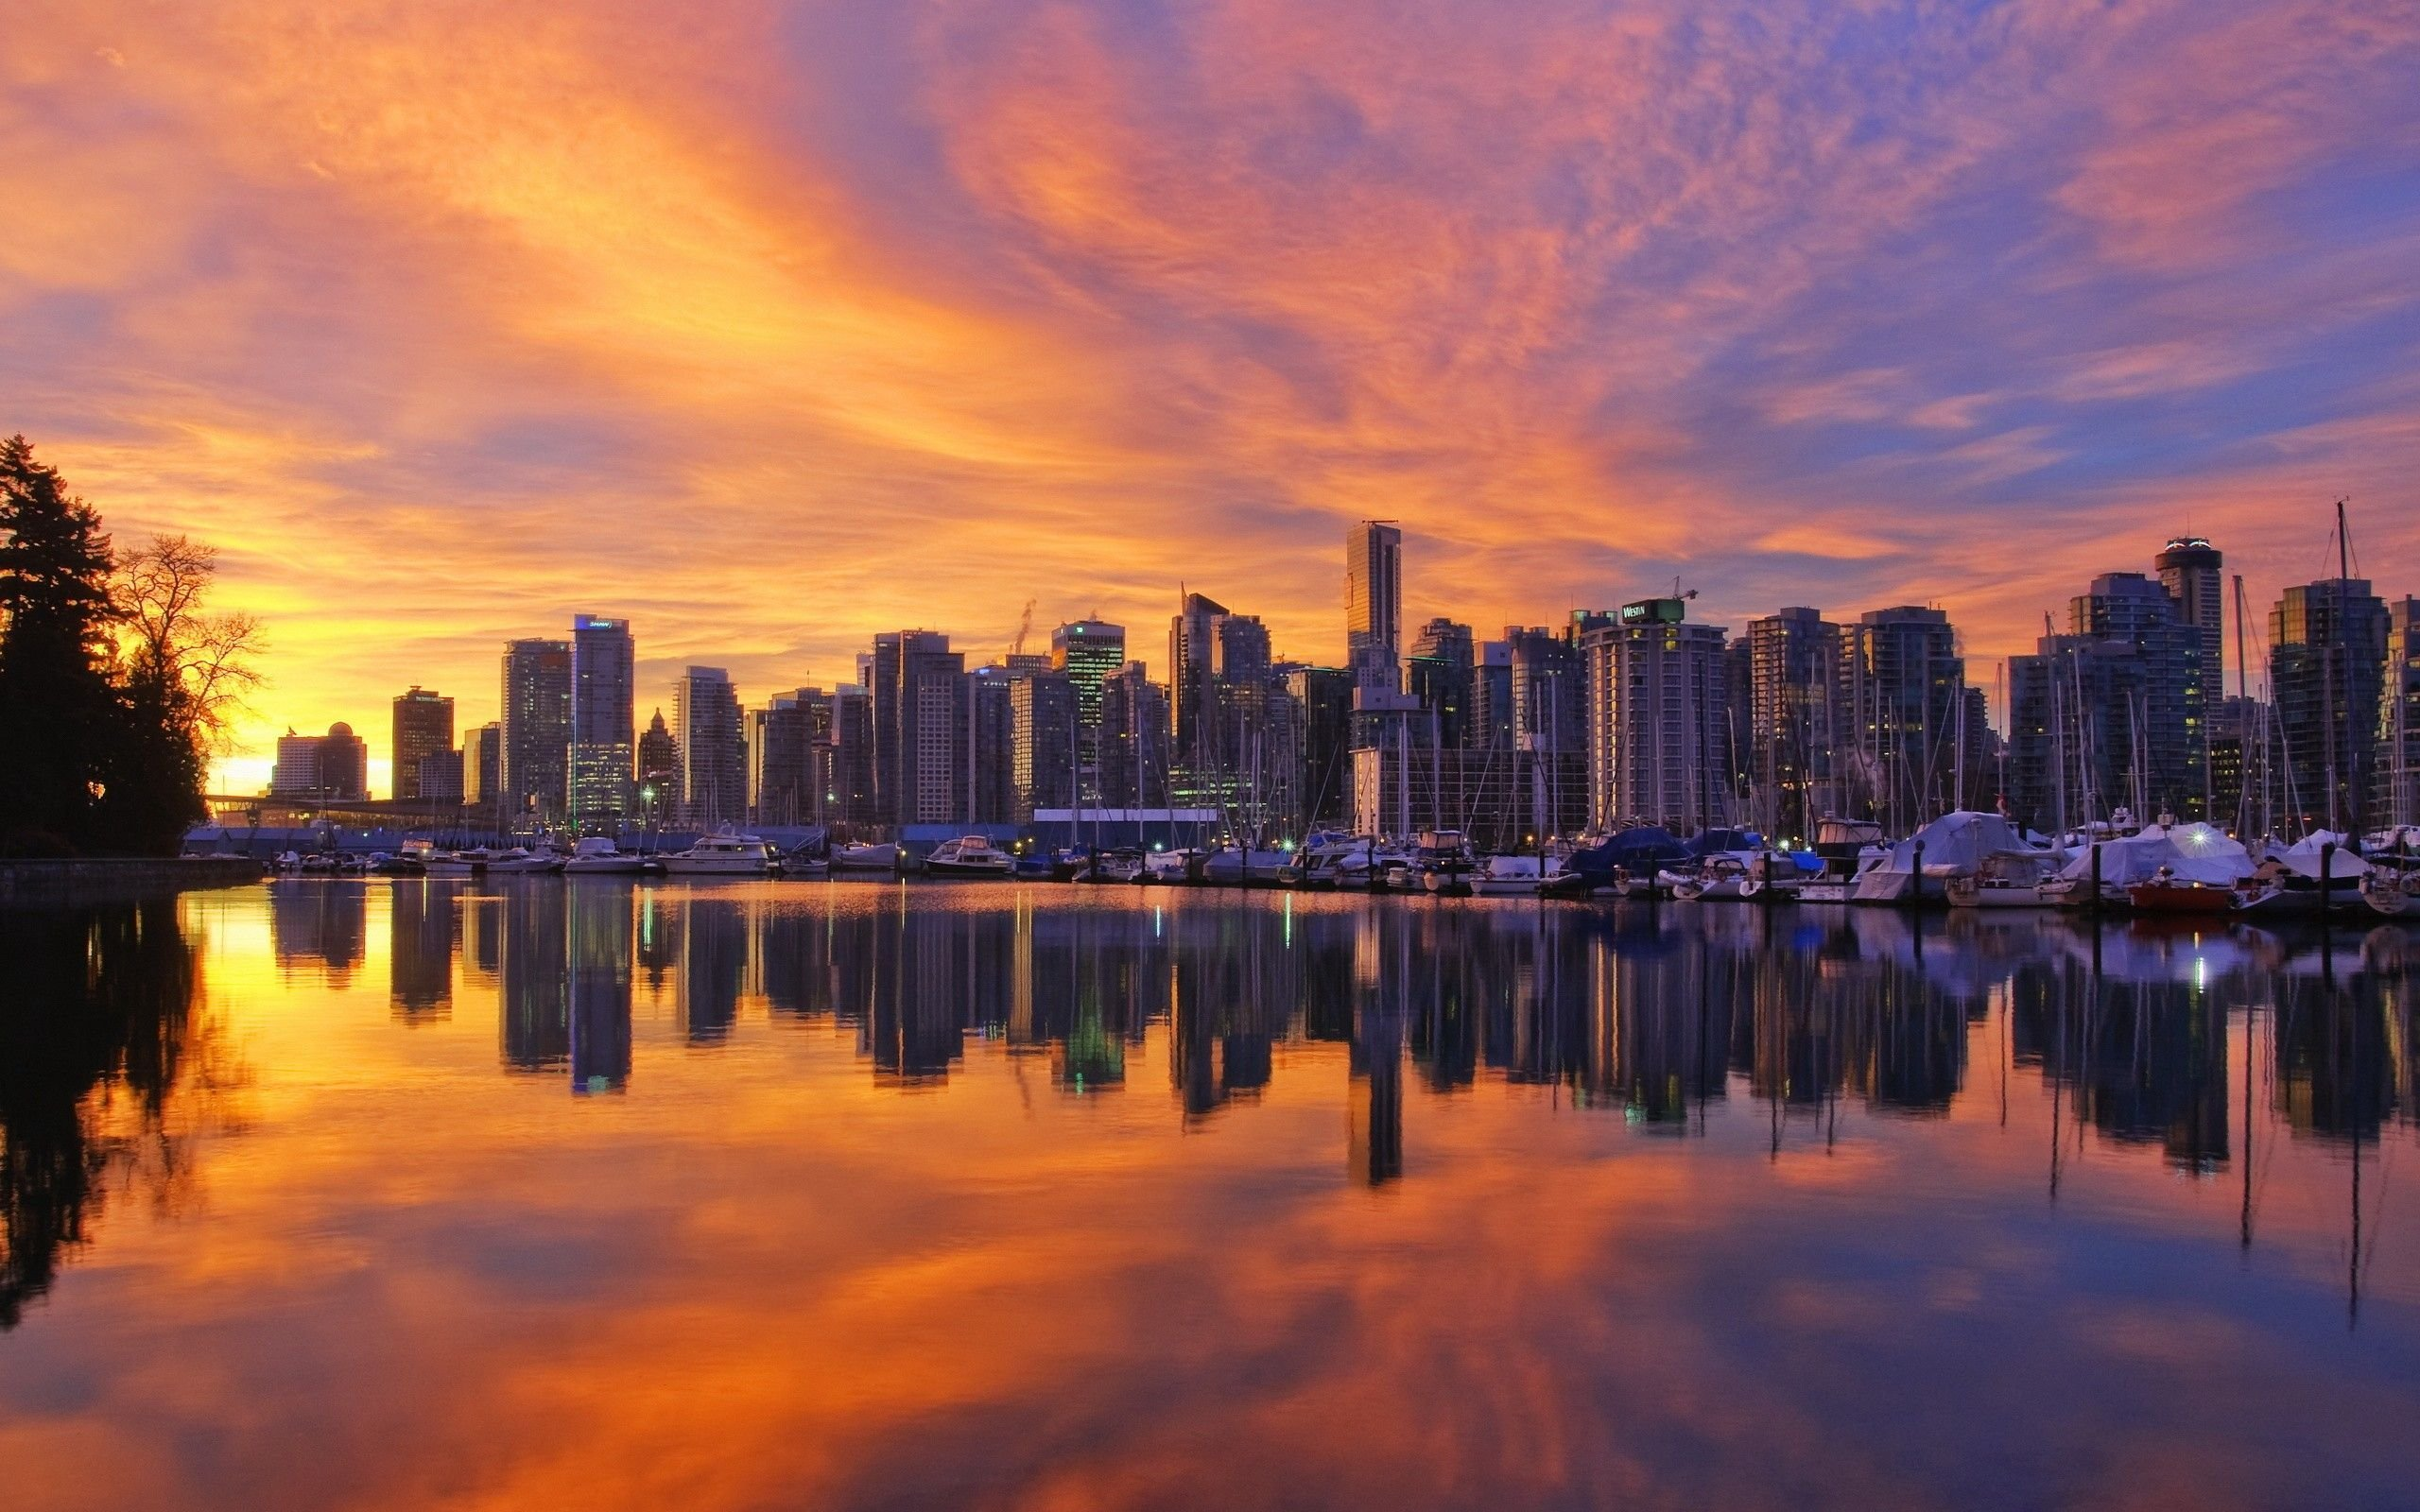 Vancouver Sunset Wallpaper 2560x1600